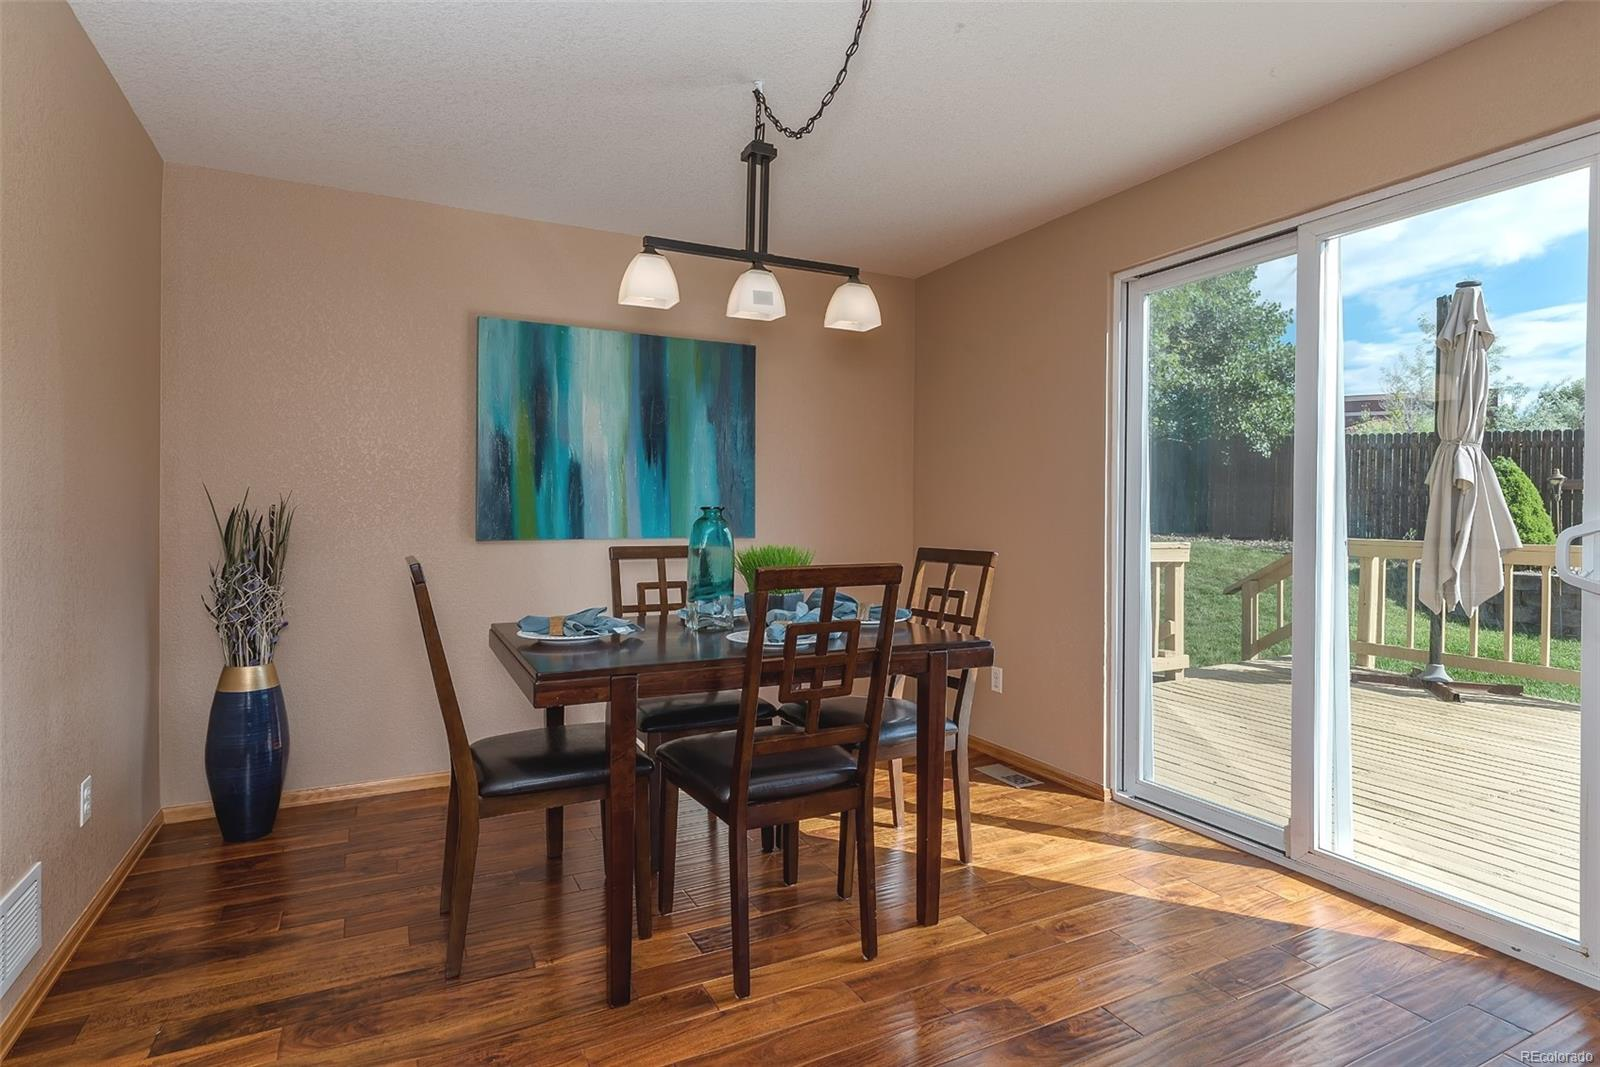 Formal dining room leading to the private backyard!